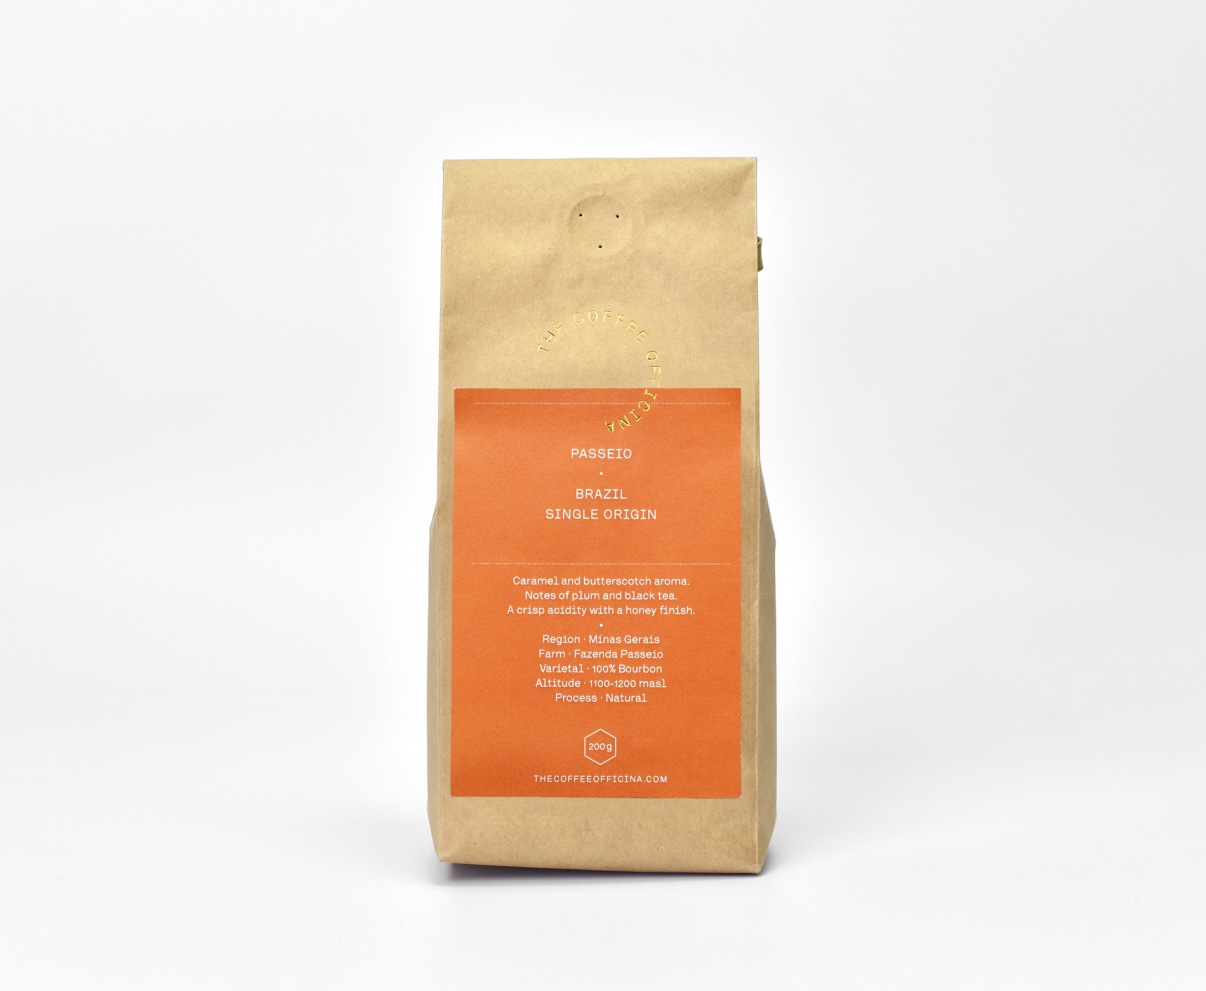 The Coffee Officina Brazil Passeio Single Origin